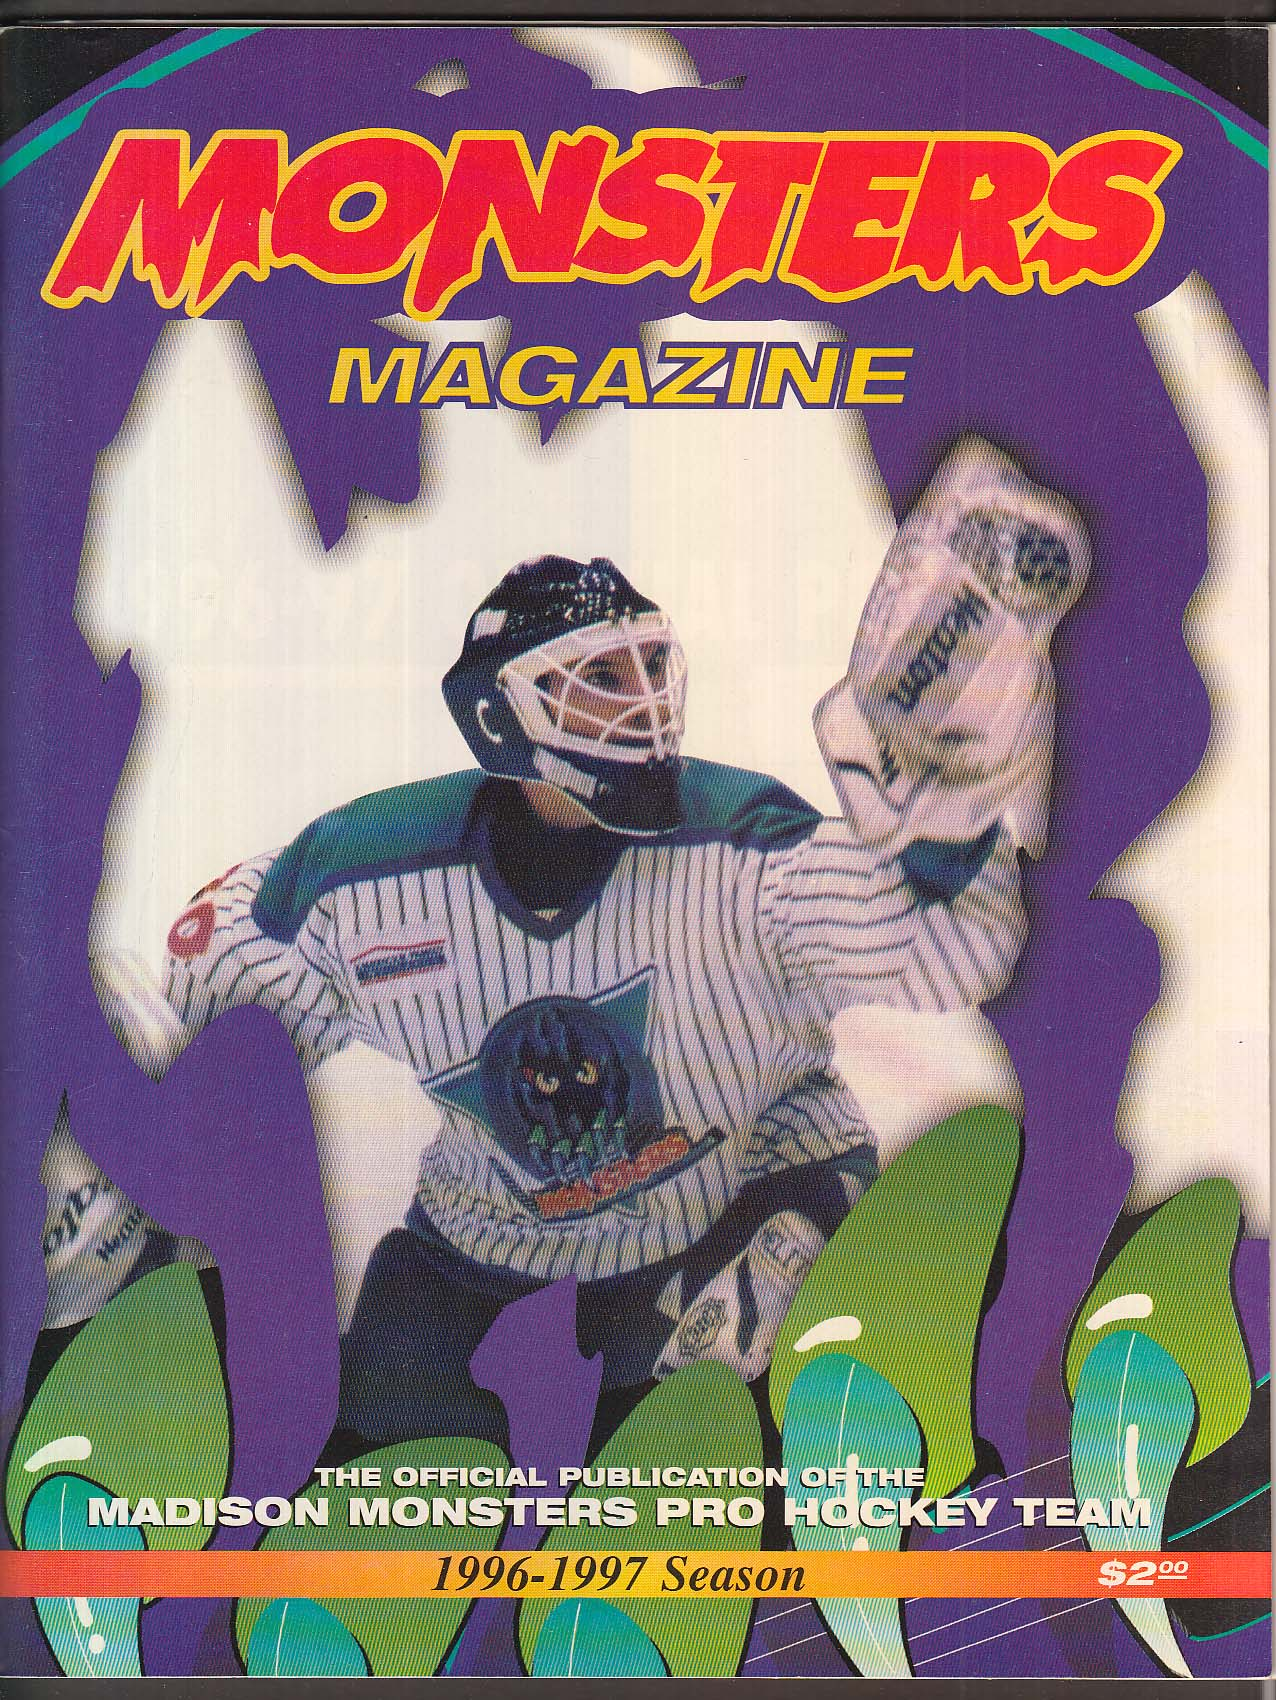 Madison Monsters Pro Hockey Team Official Publication 1996-1997